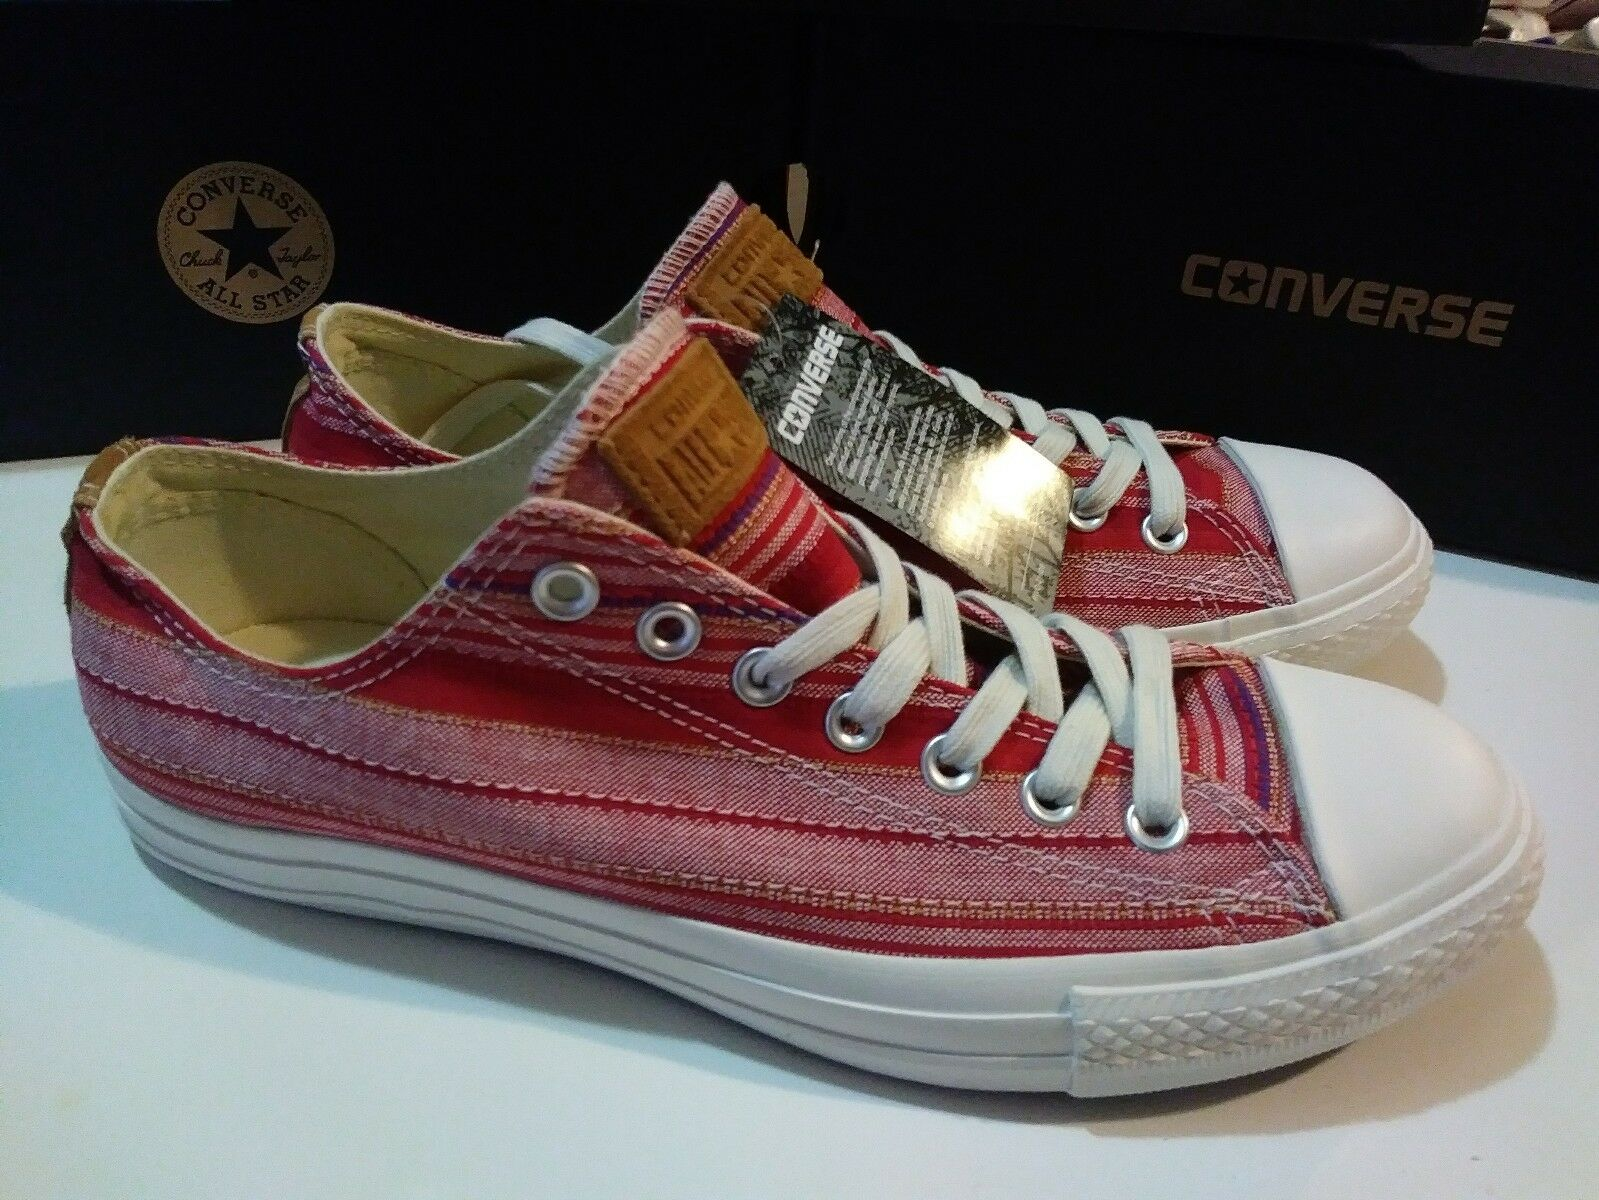 Converse CT OX Converse Red Uomo's Shoe size 11.5